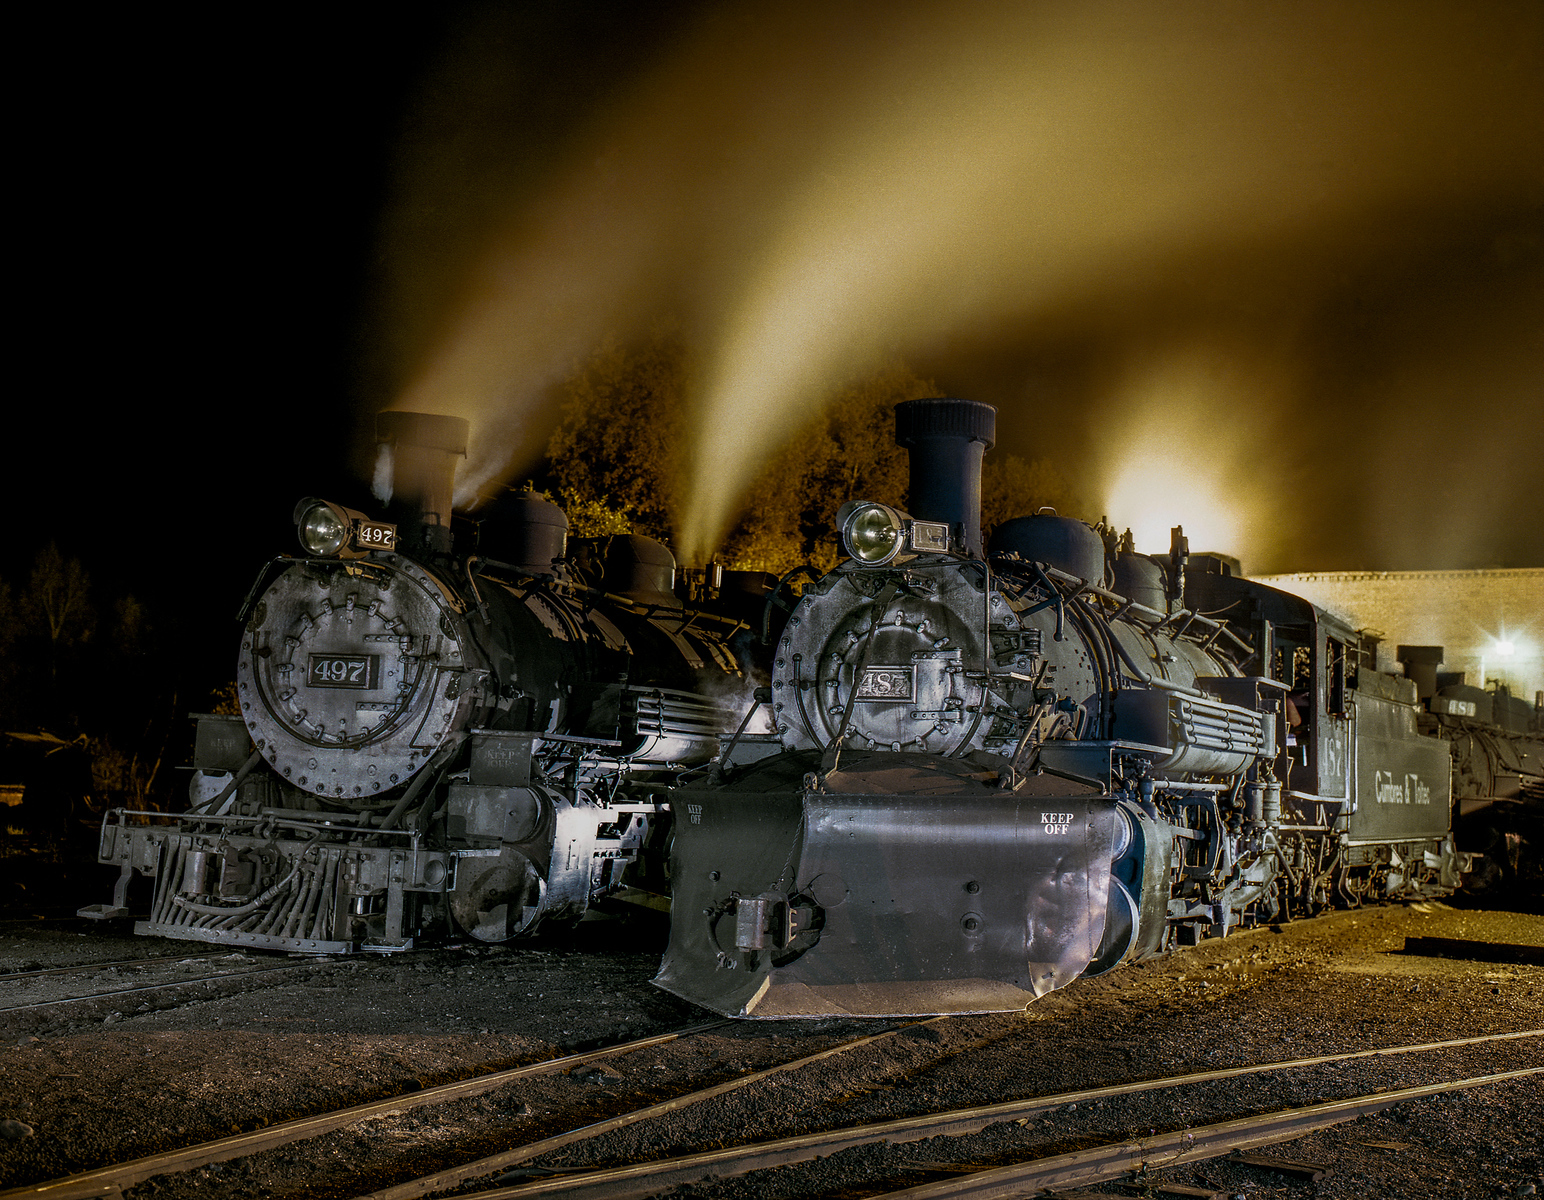 Two Cumbres & Toltec Narrow Gauge Engines at Night